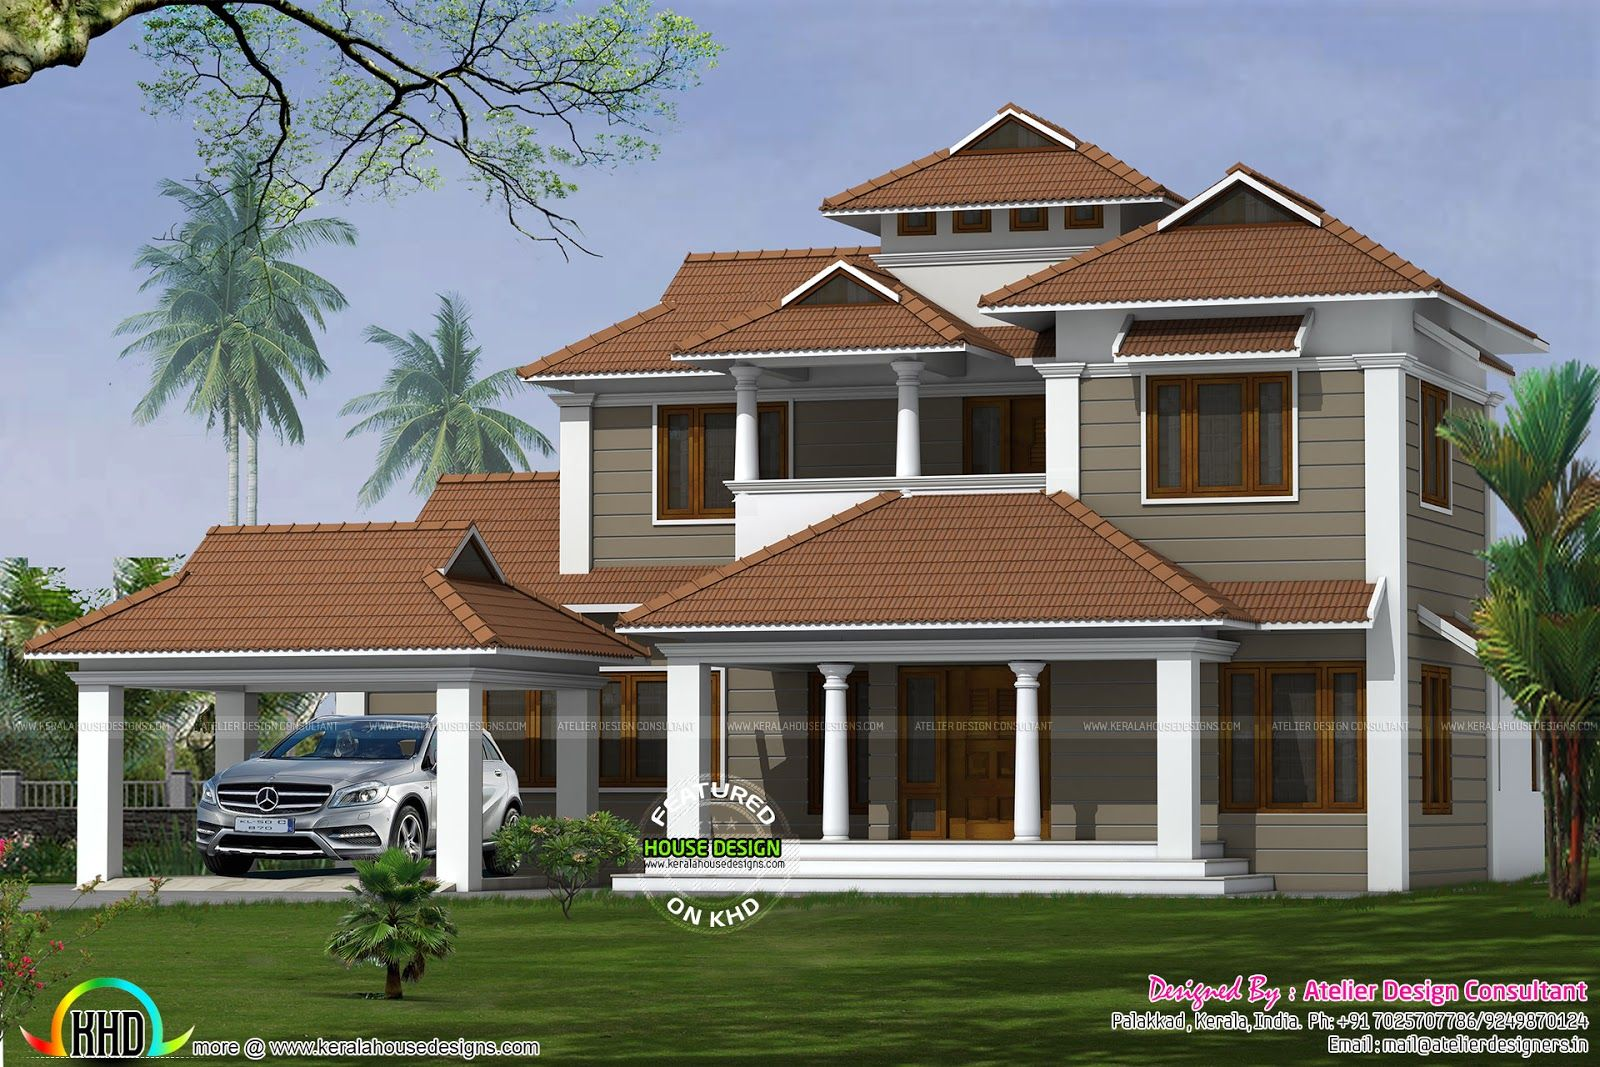 Home design types 2380 sq ft box type house kerala home design and - Bedroom Square Feet Kerala Home Design Square Feet Bedroom Contemporary Kerala Villa Design Home Design Pinterest House Roof Design Roof Design And